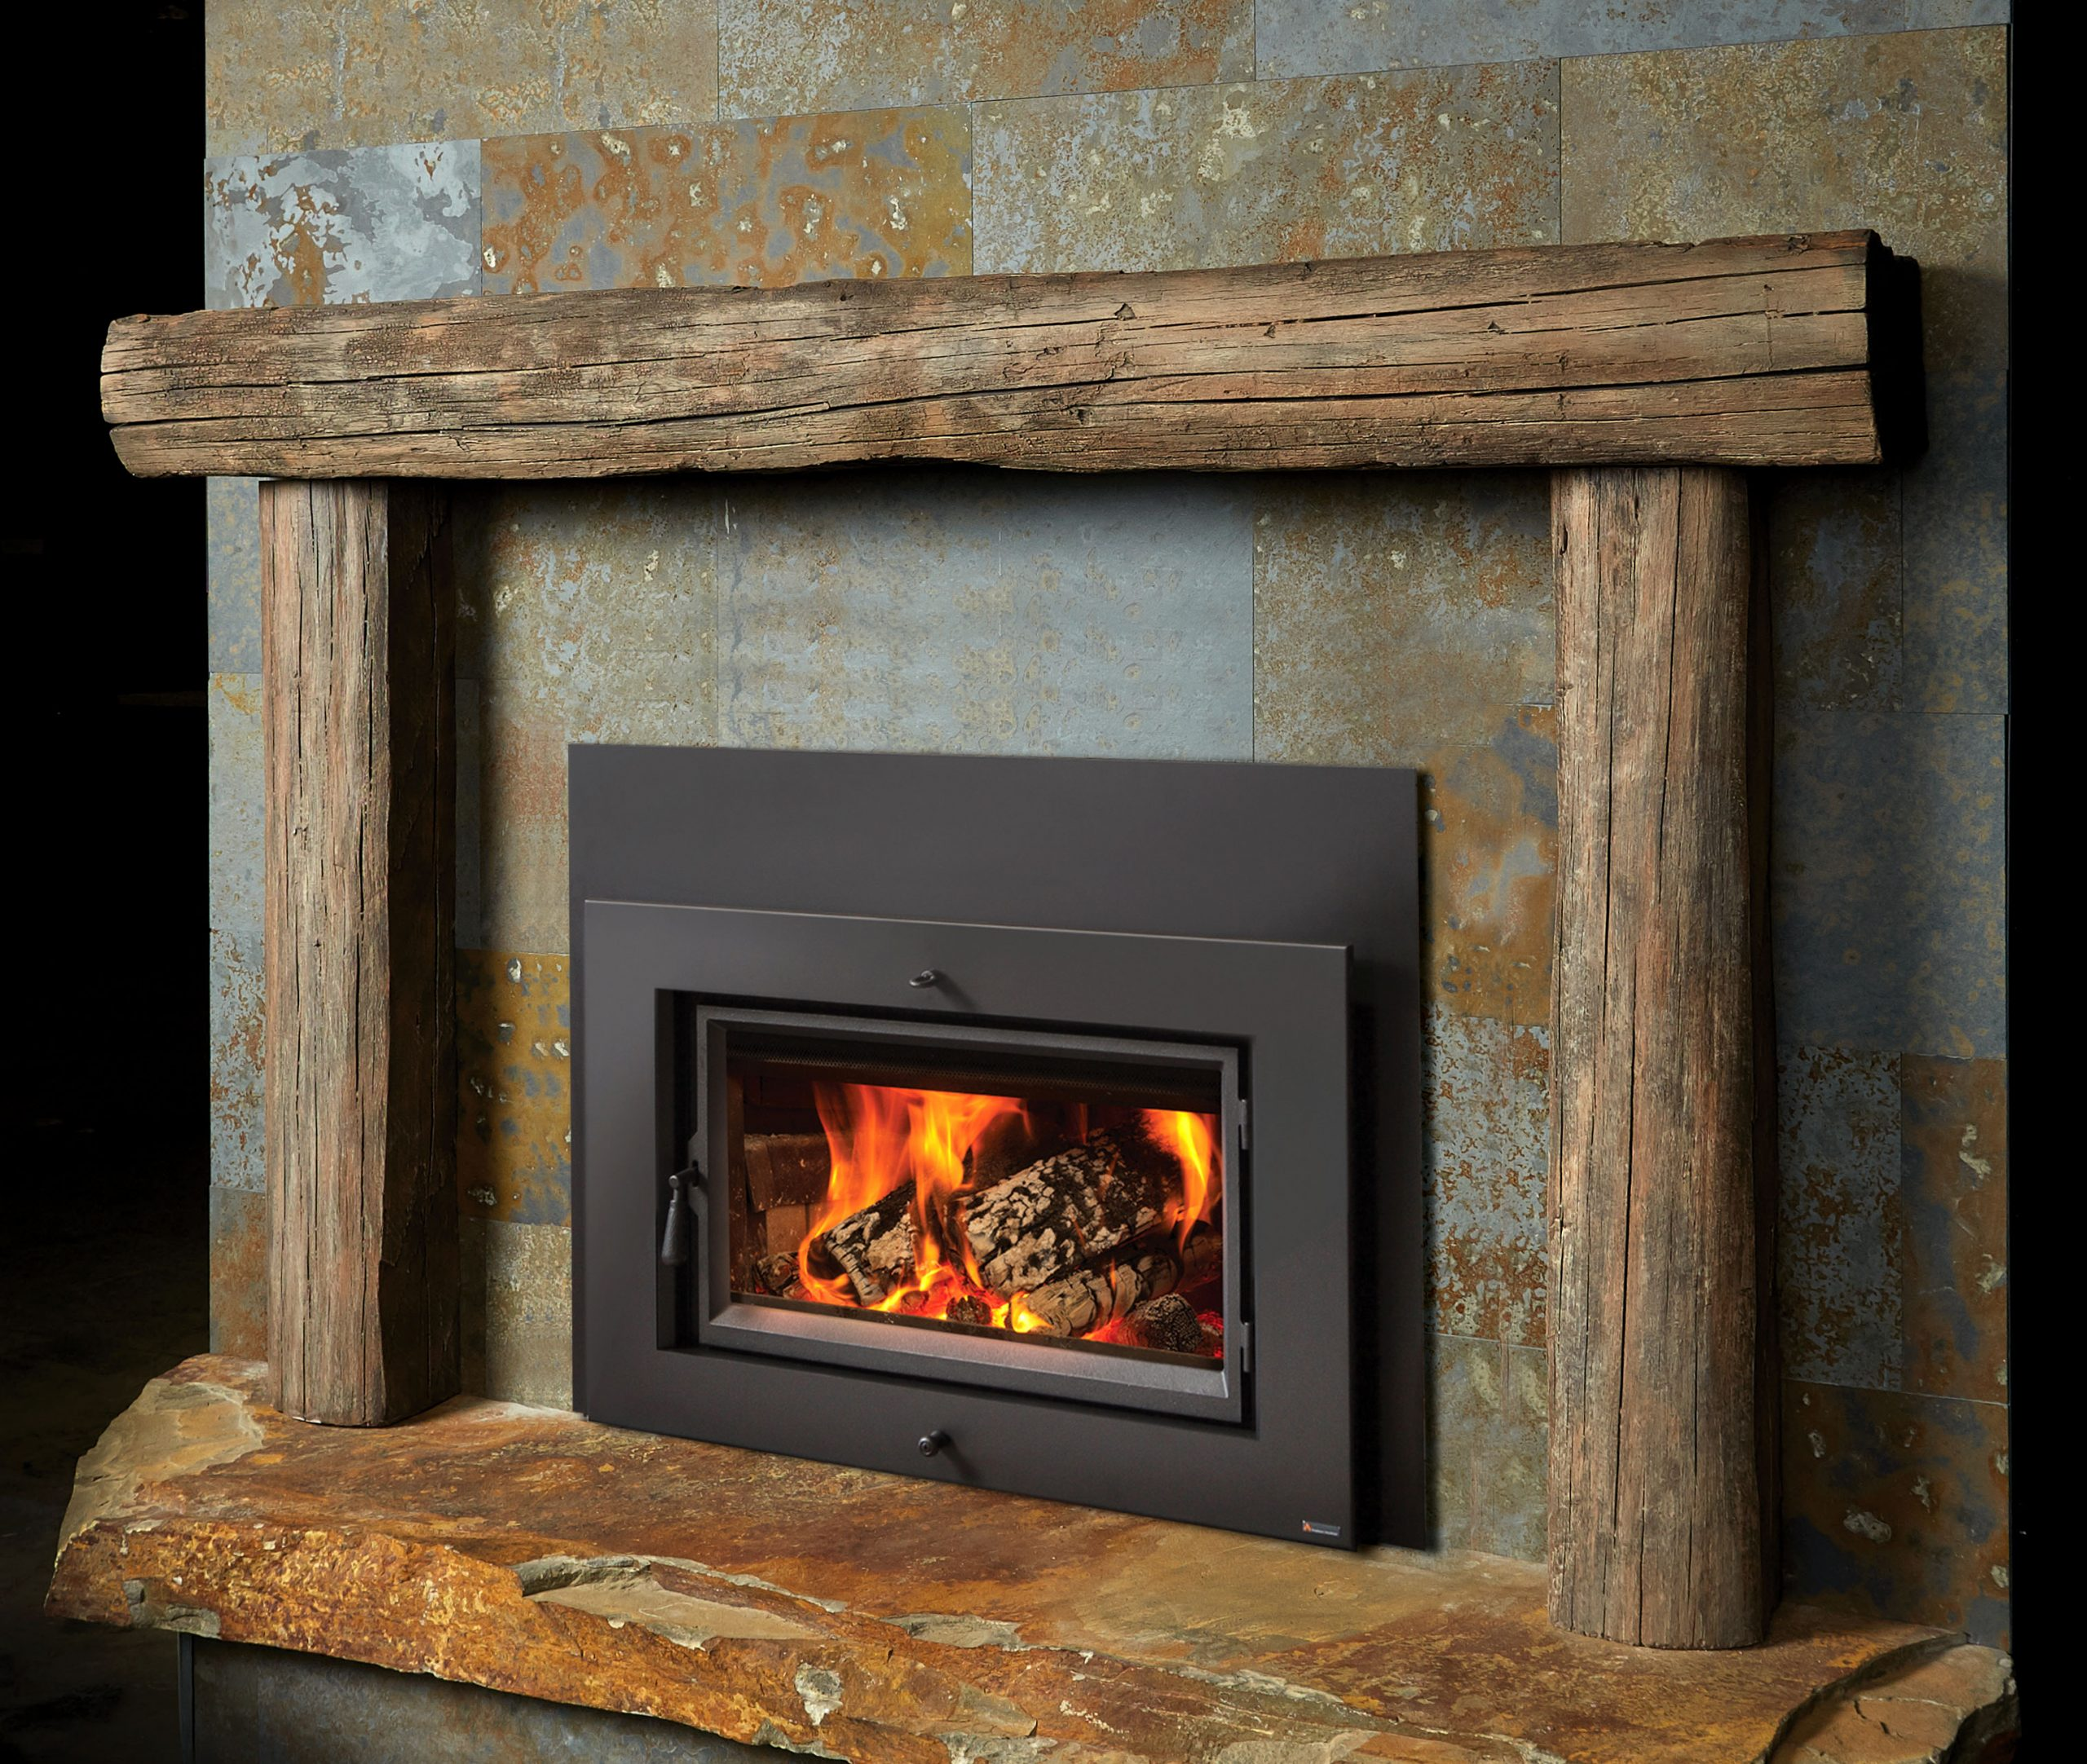 Hewn Timber Concrete Mantel & Legs